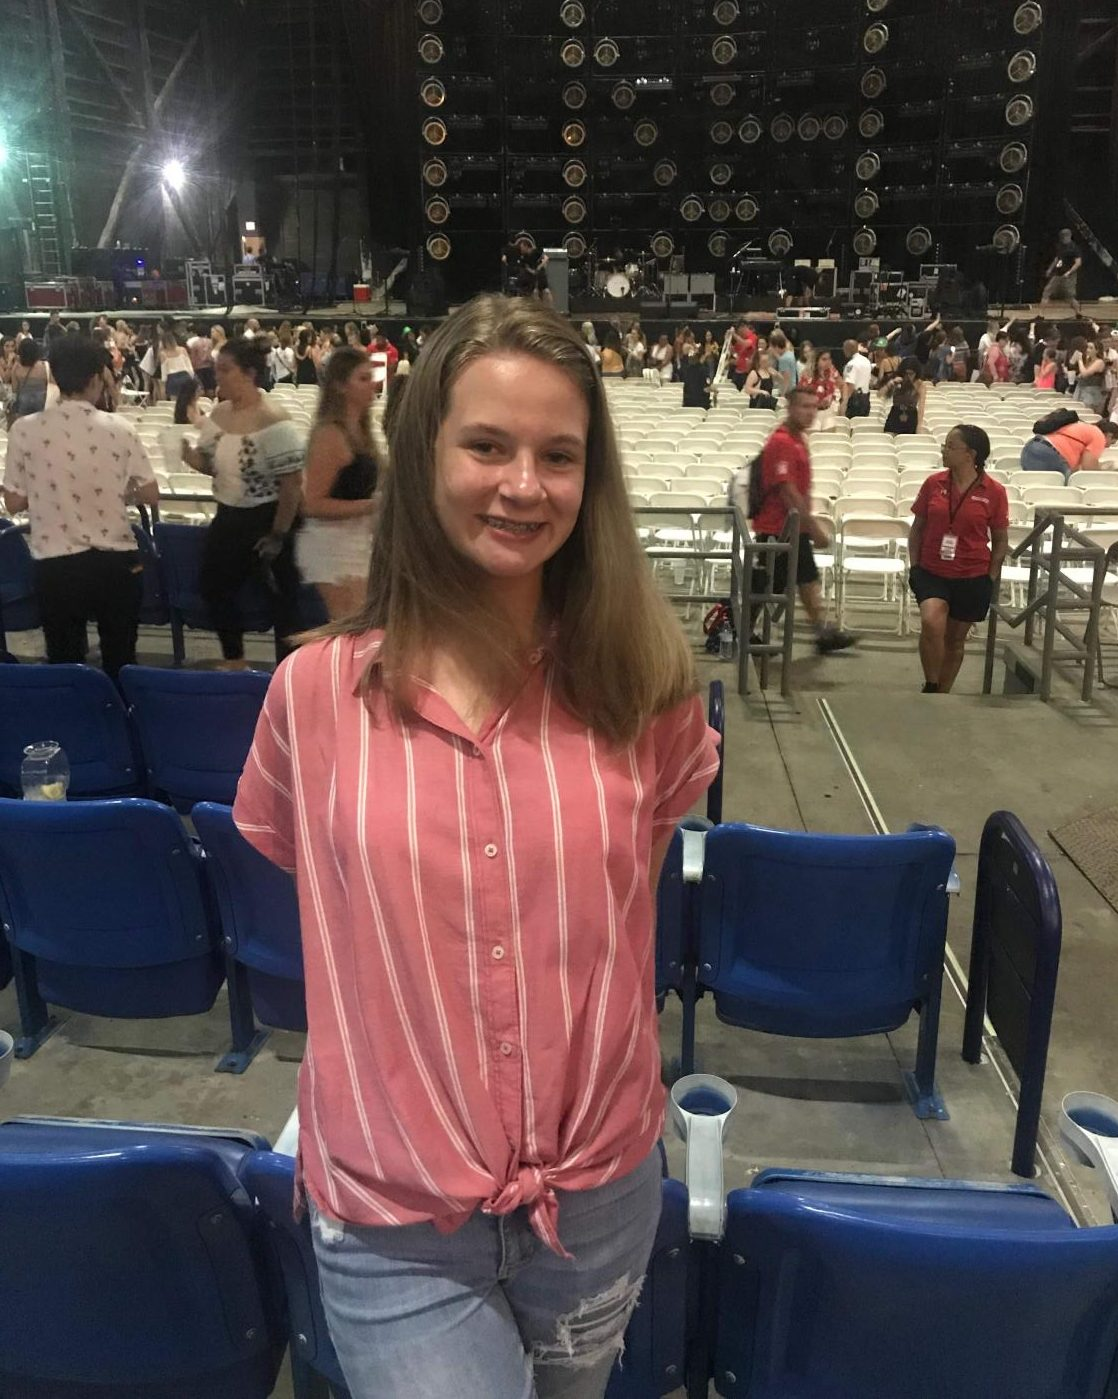 Sophomore Caroline Grier smiles for the camera at a Niall Horan concert. Grier made the most of this concert by being herself and having fun. Photo provided by Caroline Grier.